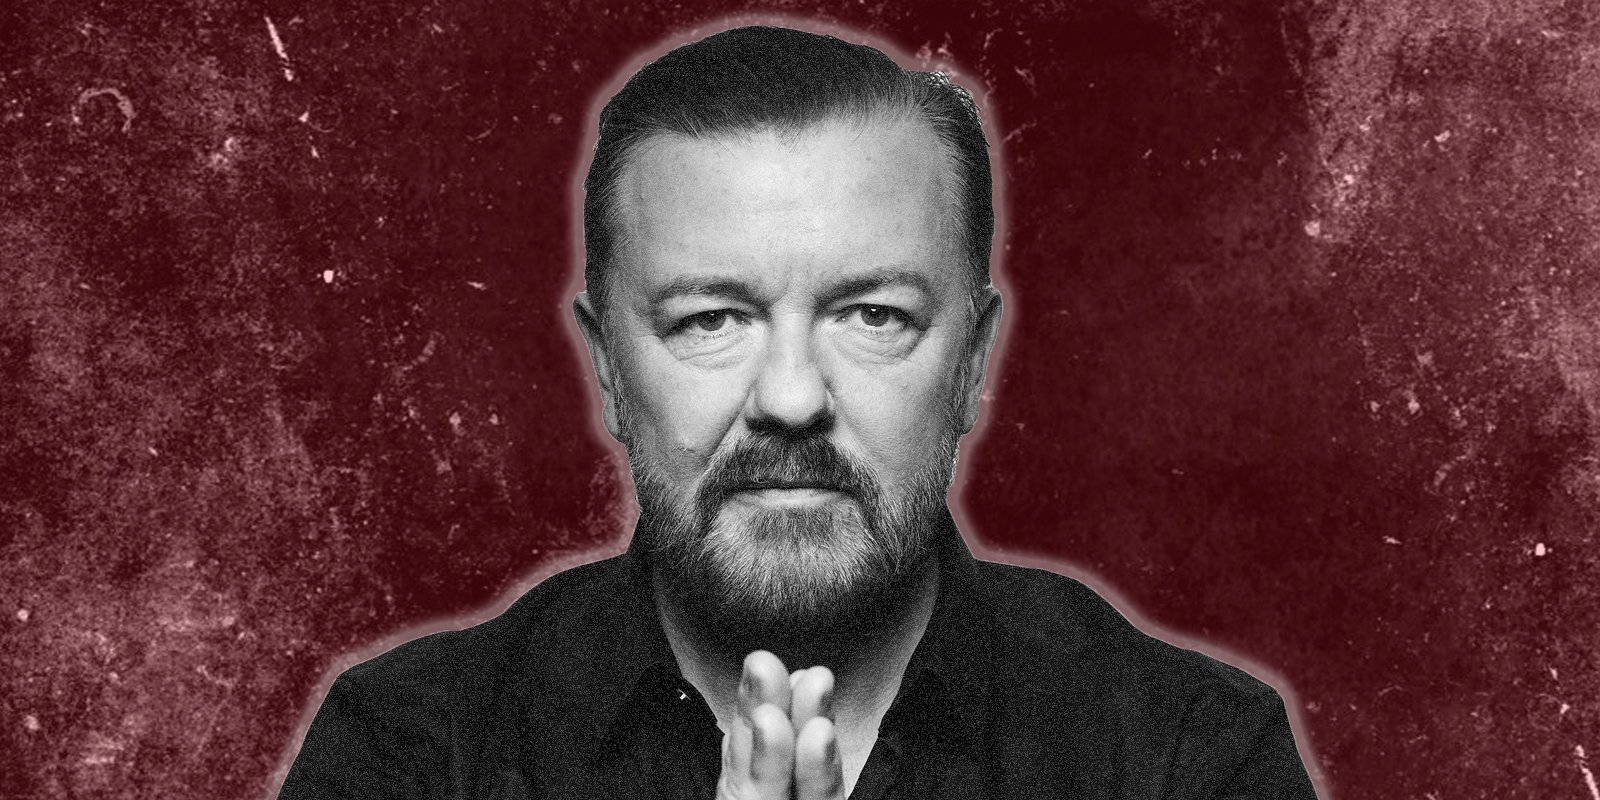 WATCH: Ricky Gervais skewers Hollywood woke culture at Golden Globe Awards